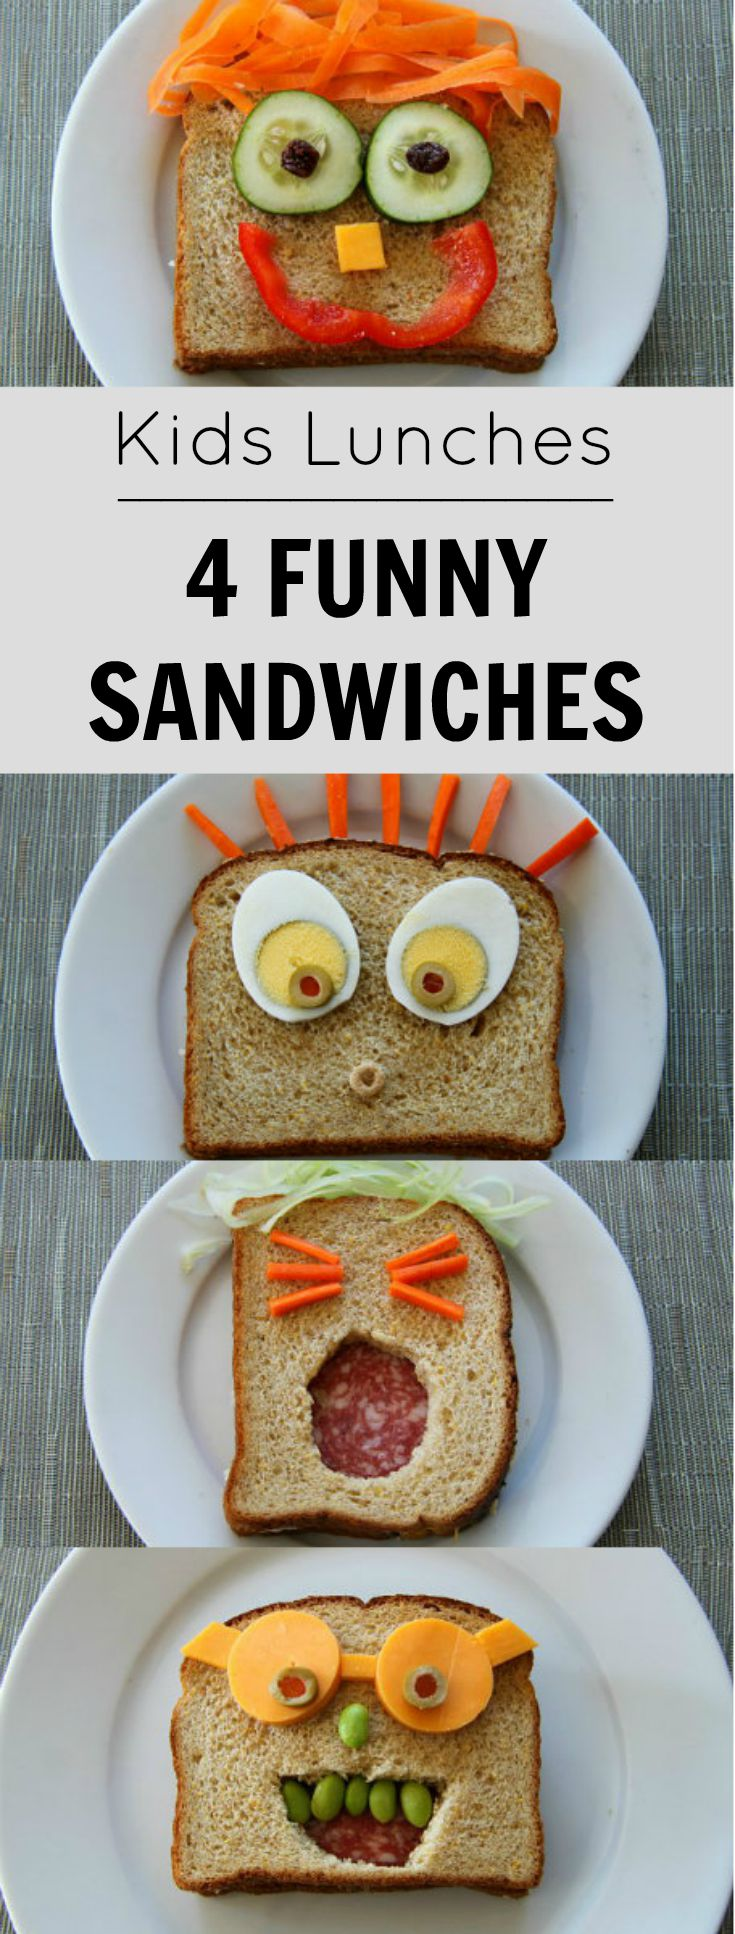 When kids get tired of their normal sandwiches, bust out one of these for lunch.